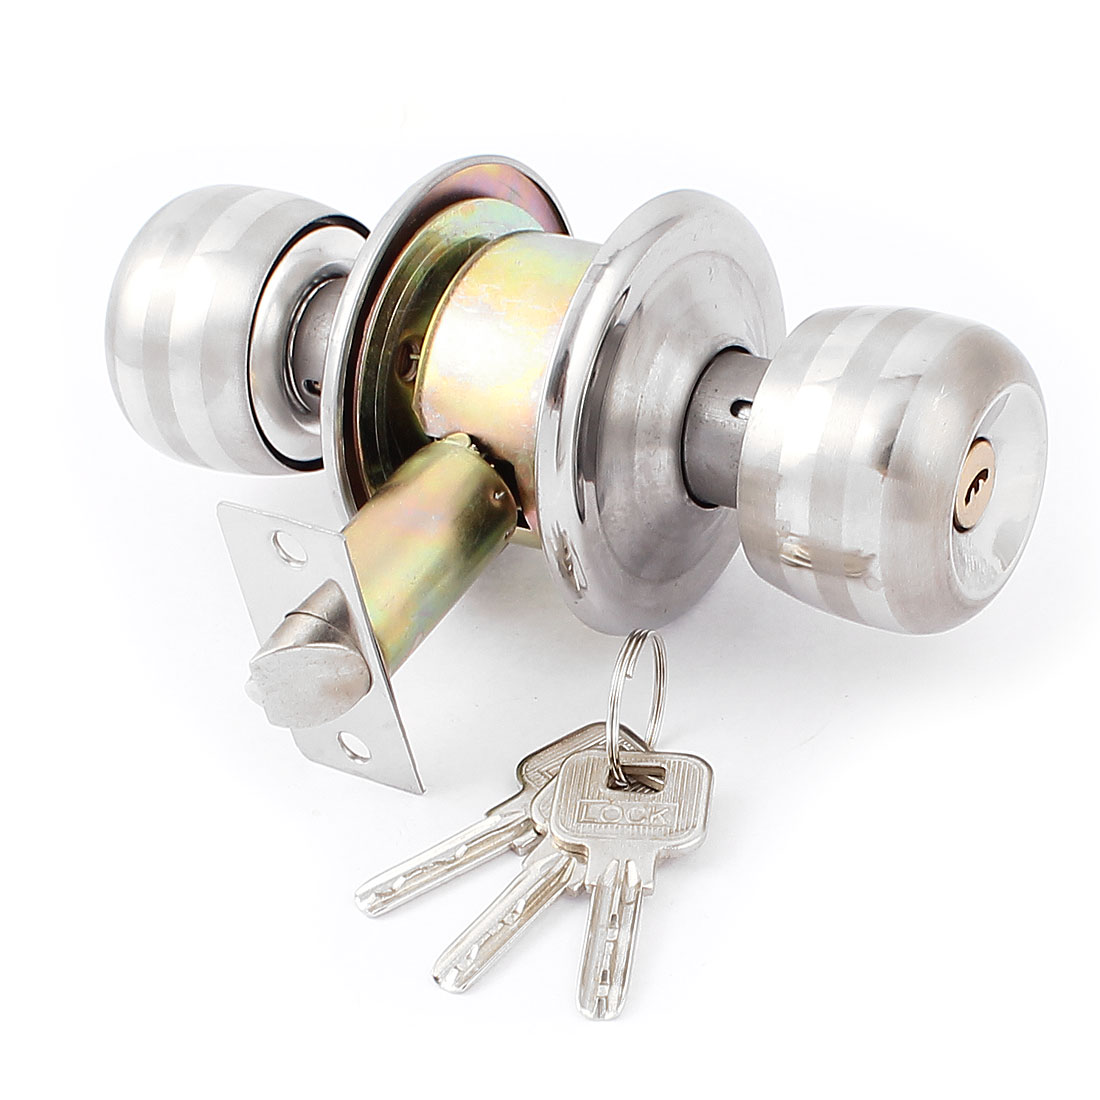 bedroom bathroom round knobs door knob lock locks hardware w keys walmartcom - Bathroom Door Knobs